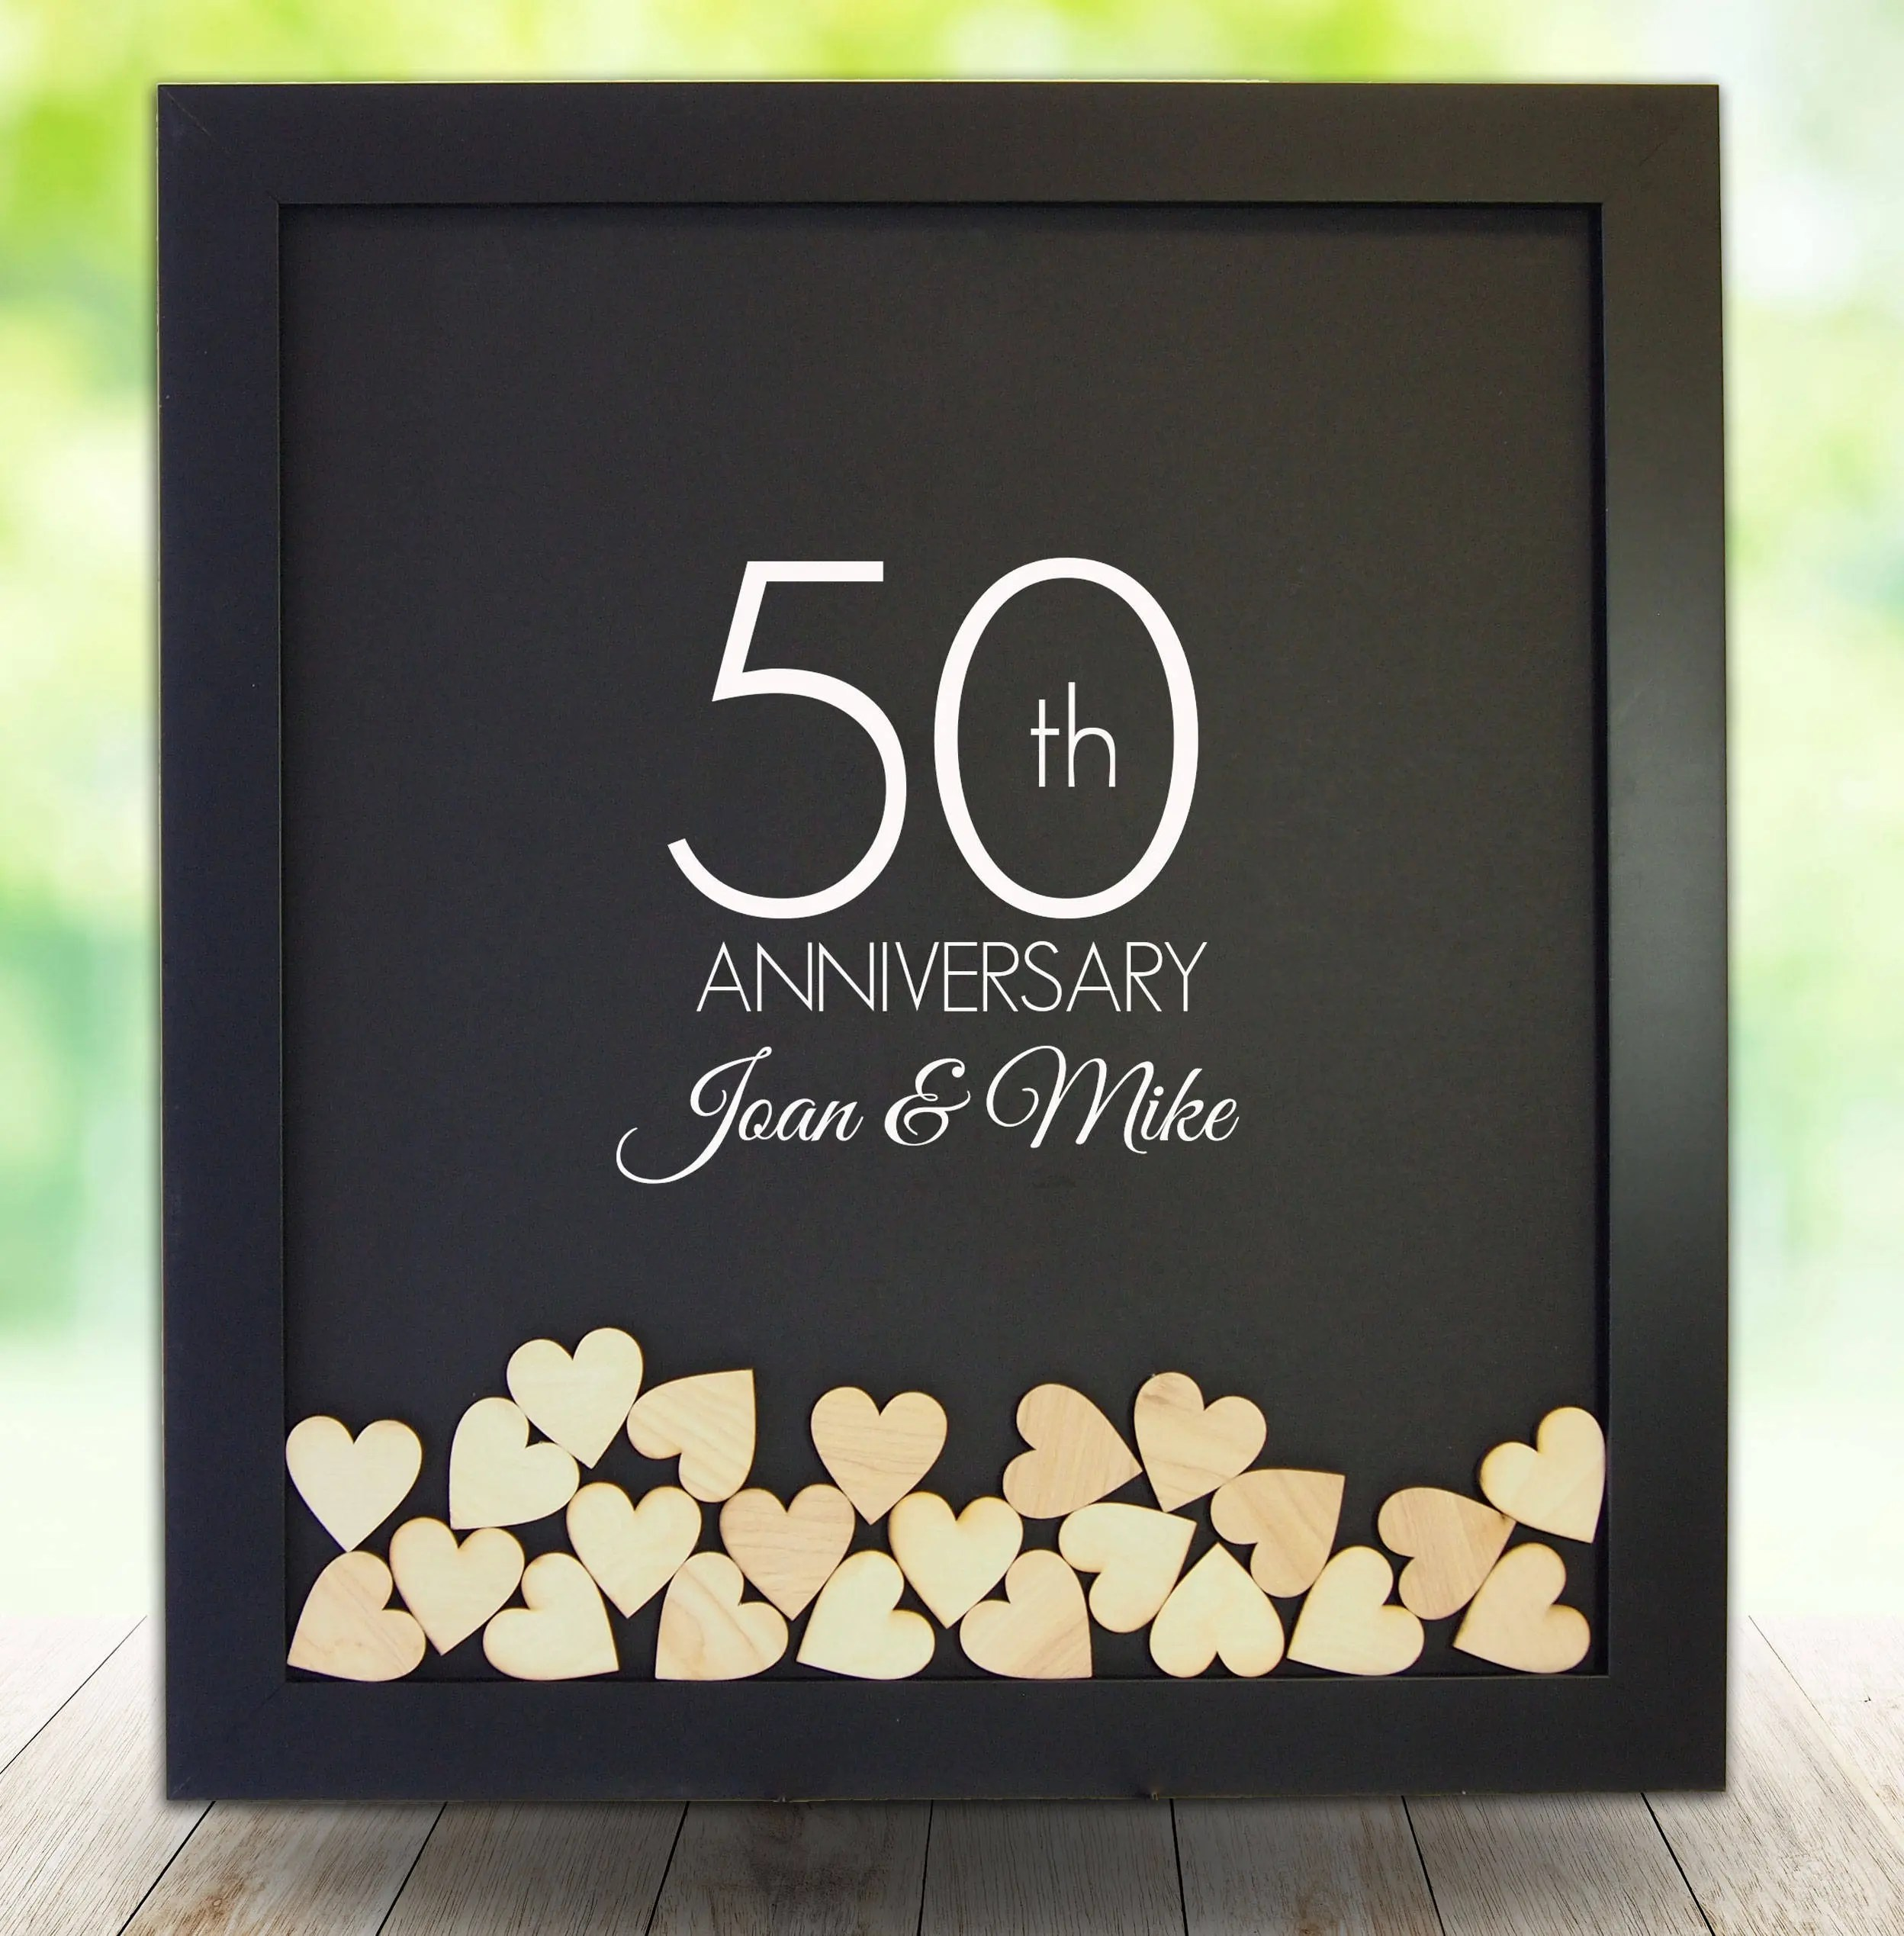 Cushty Anniversary Gifts Frame Guest Book Wedding Gift Gensilver Anniversary Gifts Frame Guest Book Wedding Gift 50th Anniversary Gifts Husband 50th Anniversary Gift Baskets gifts 50th Anniversary Gift